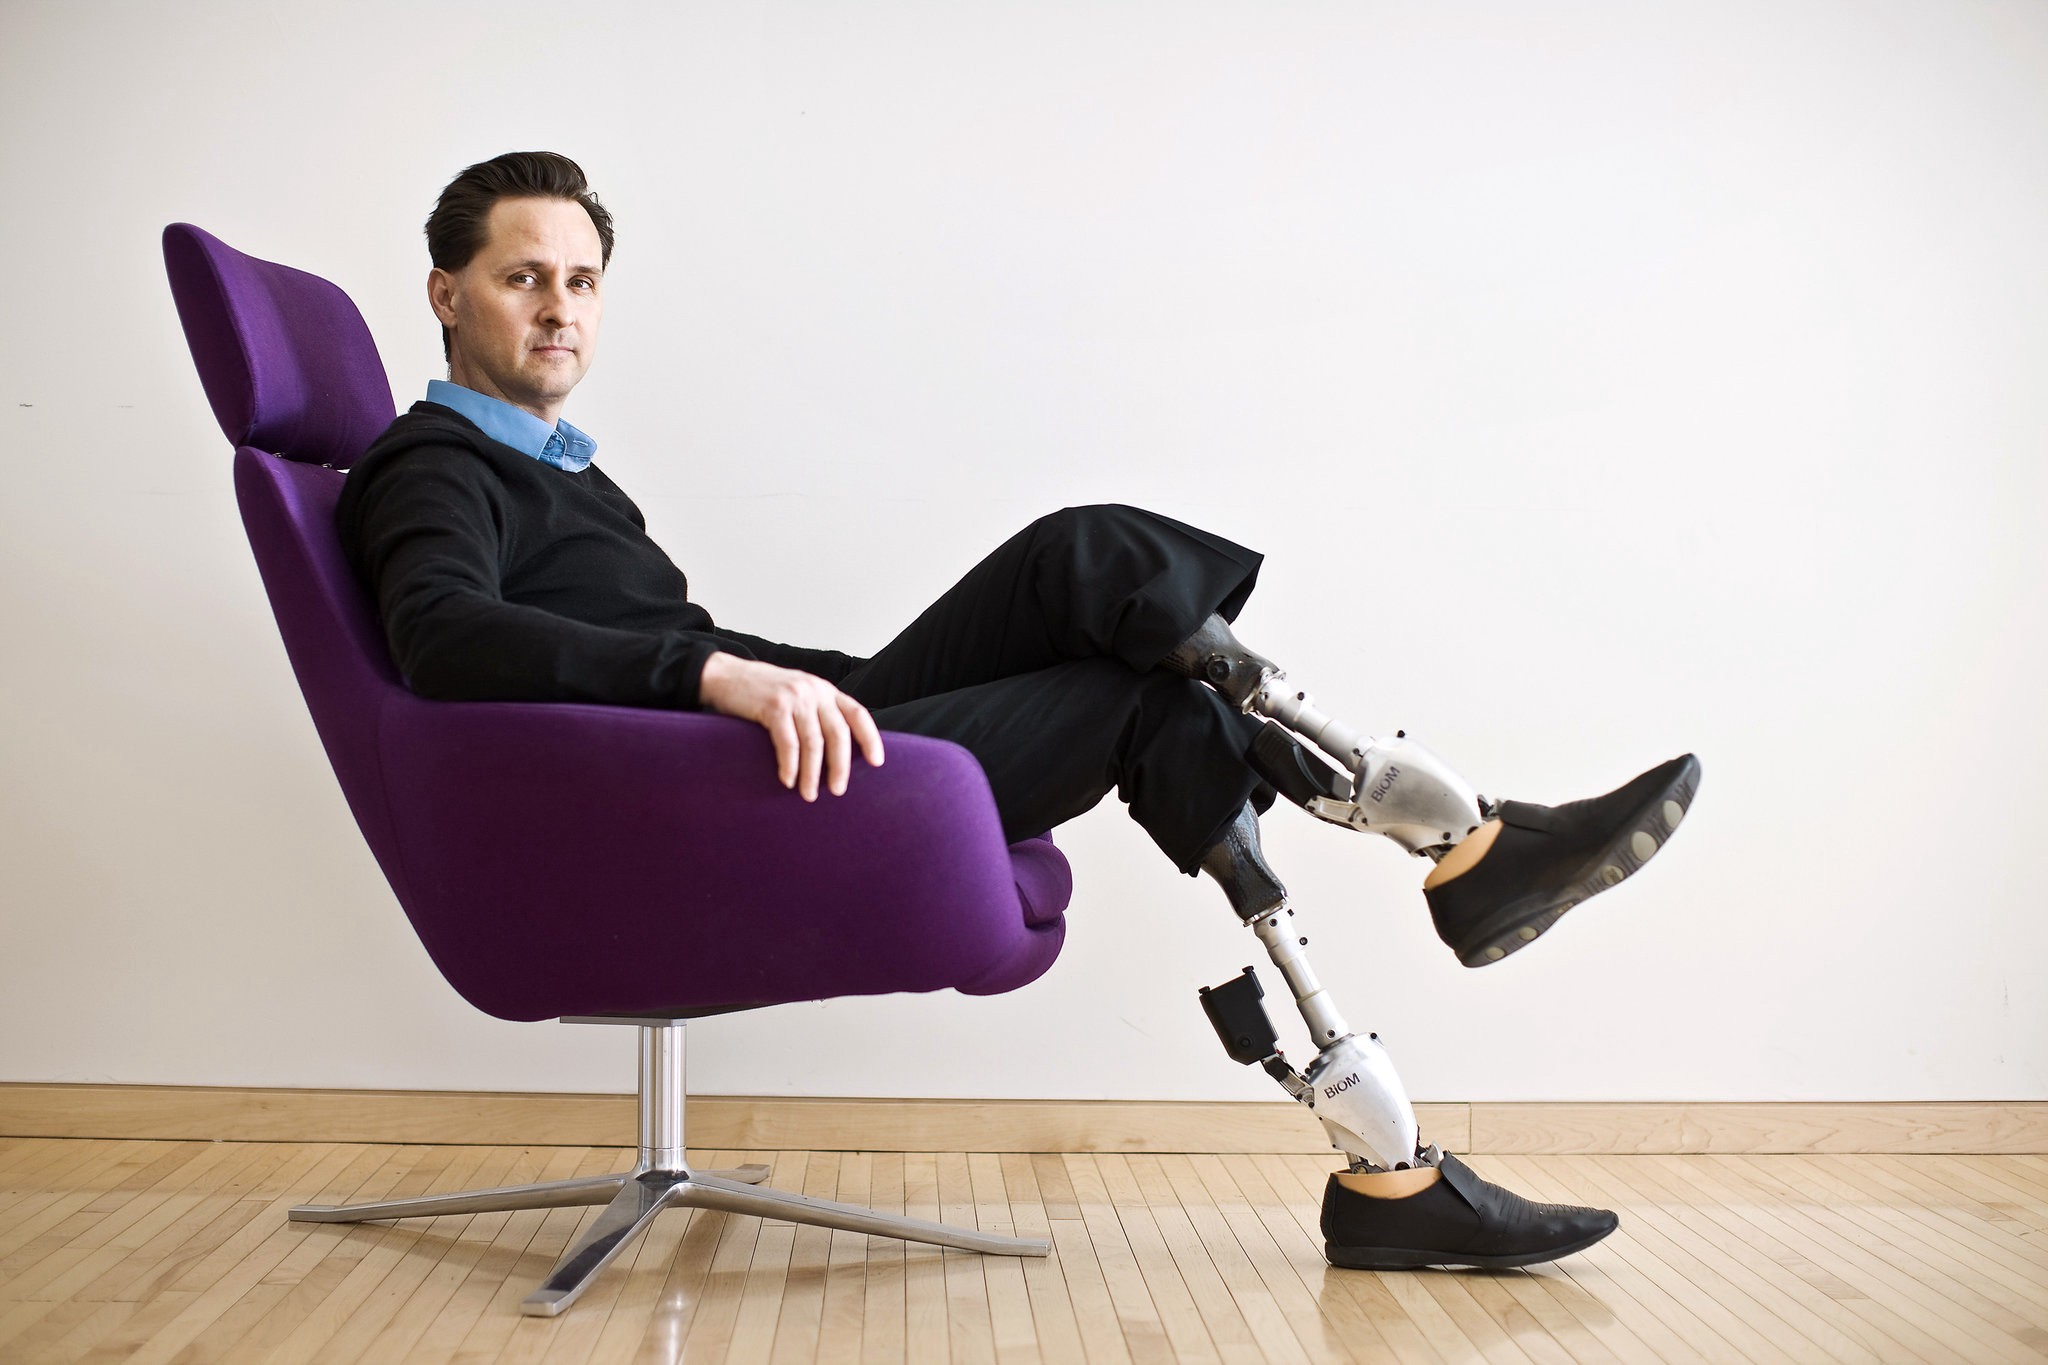 Hugh Herr discusses bionic limb technology: Highlights from his